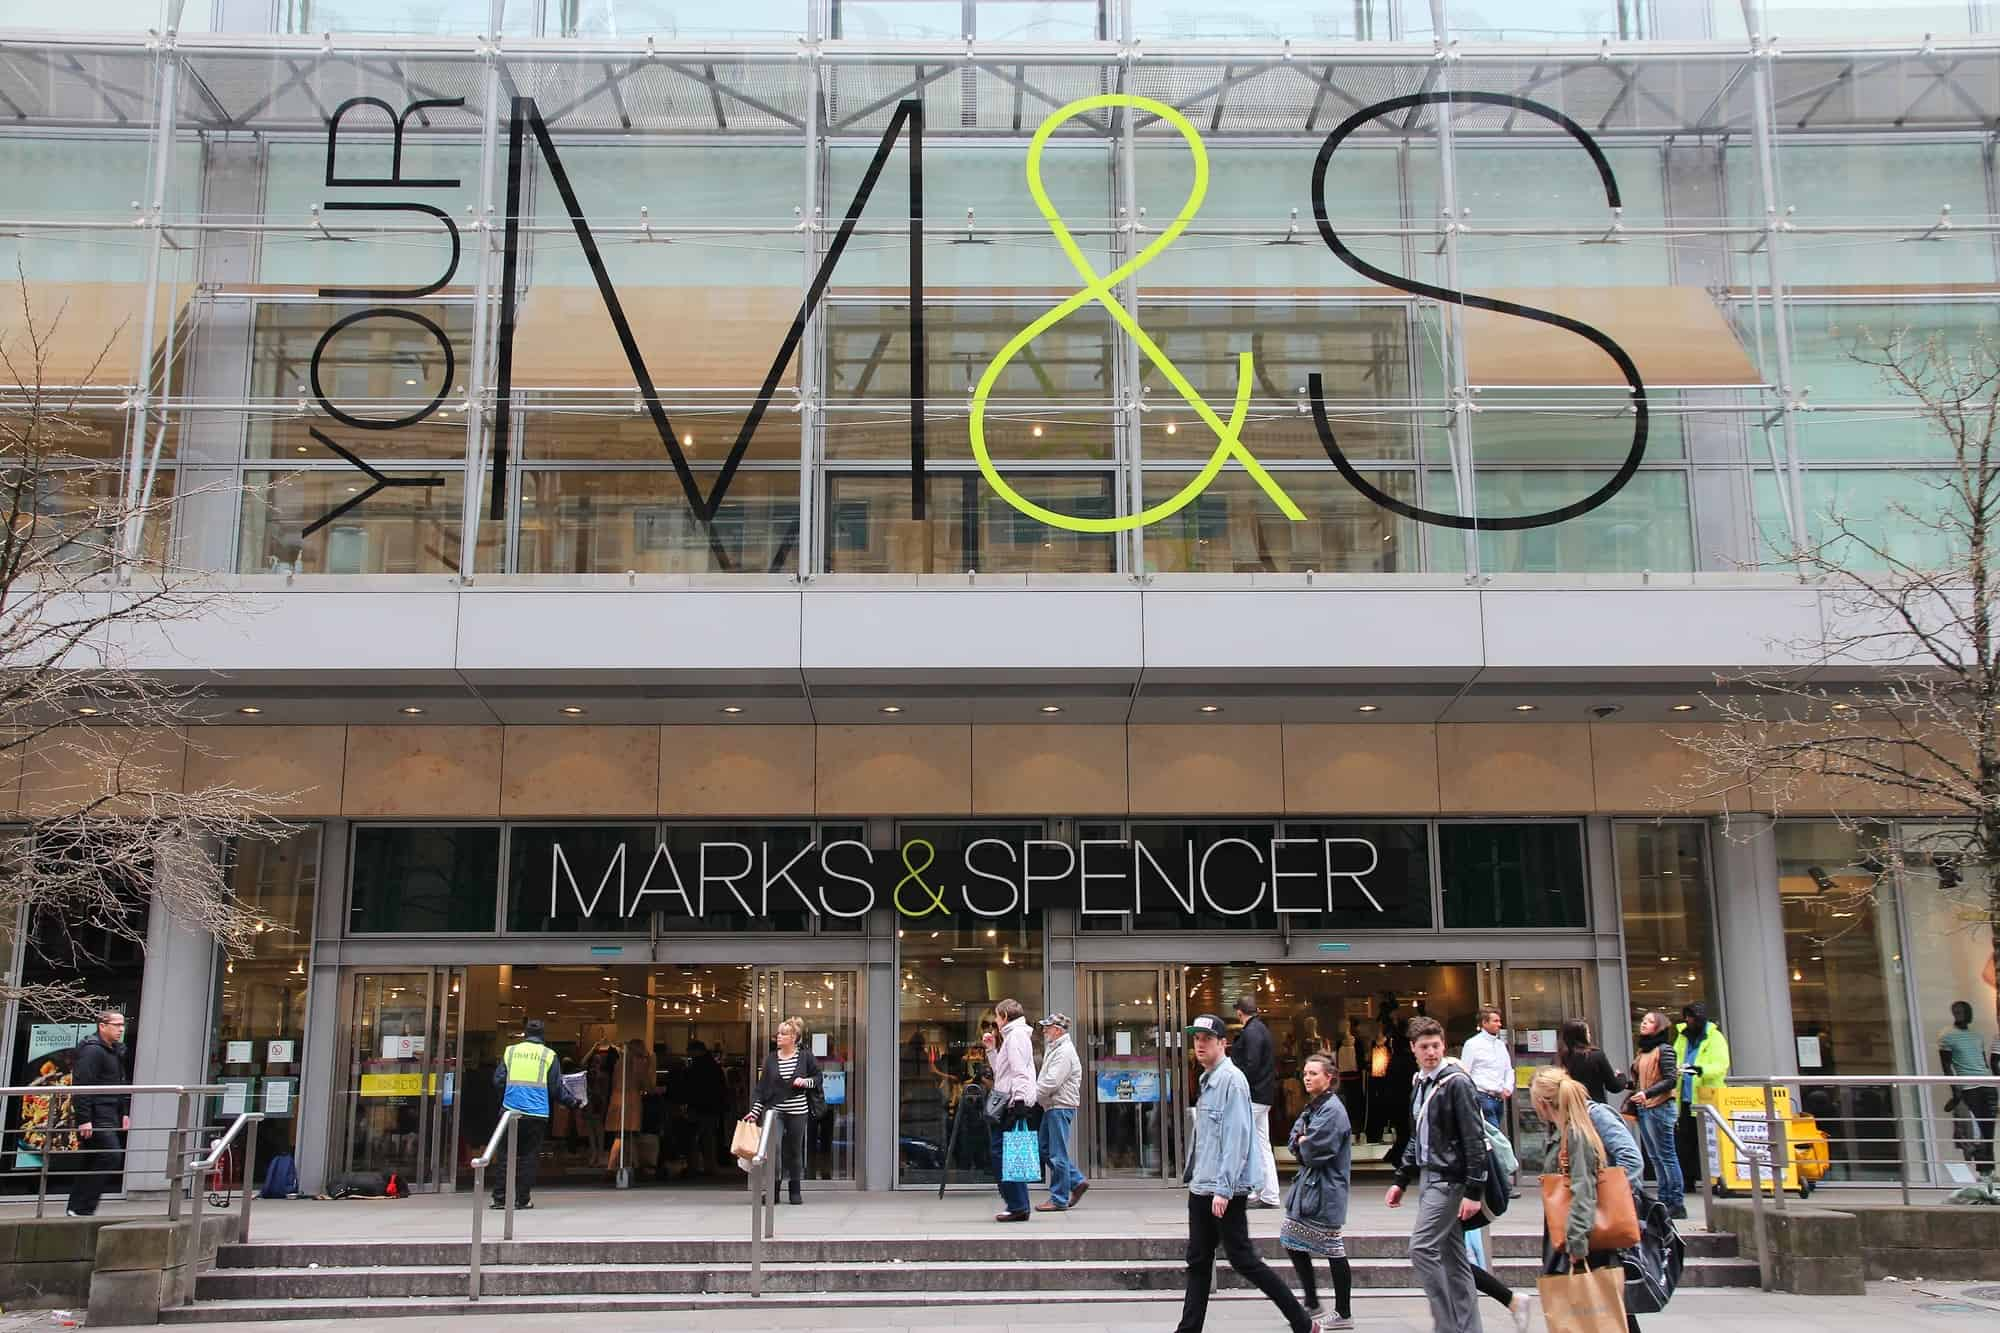 Move of the Week: M&S Food's New Top Team